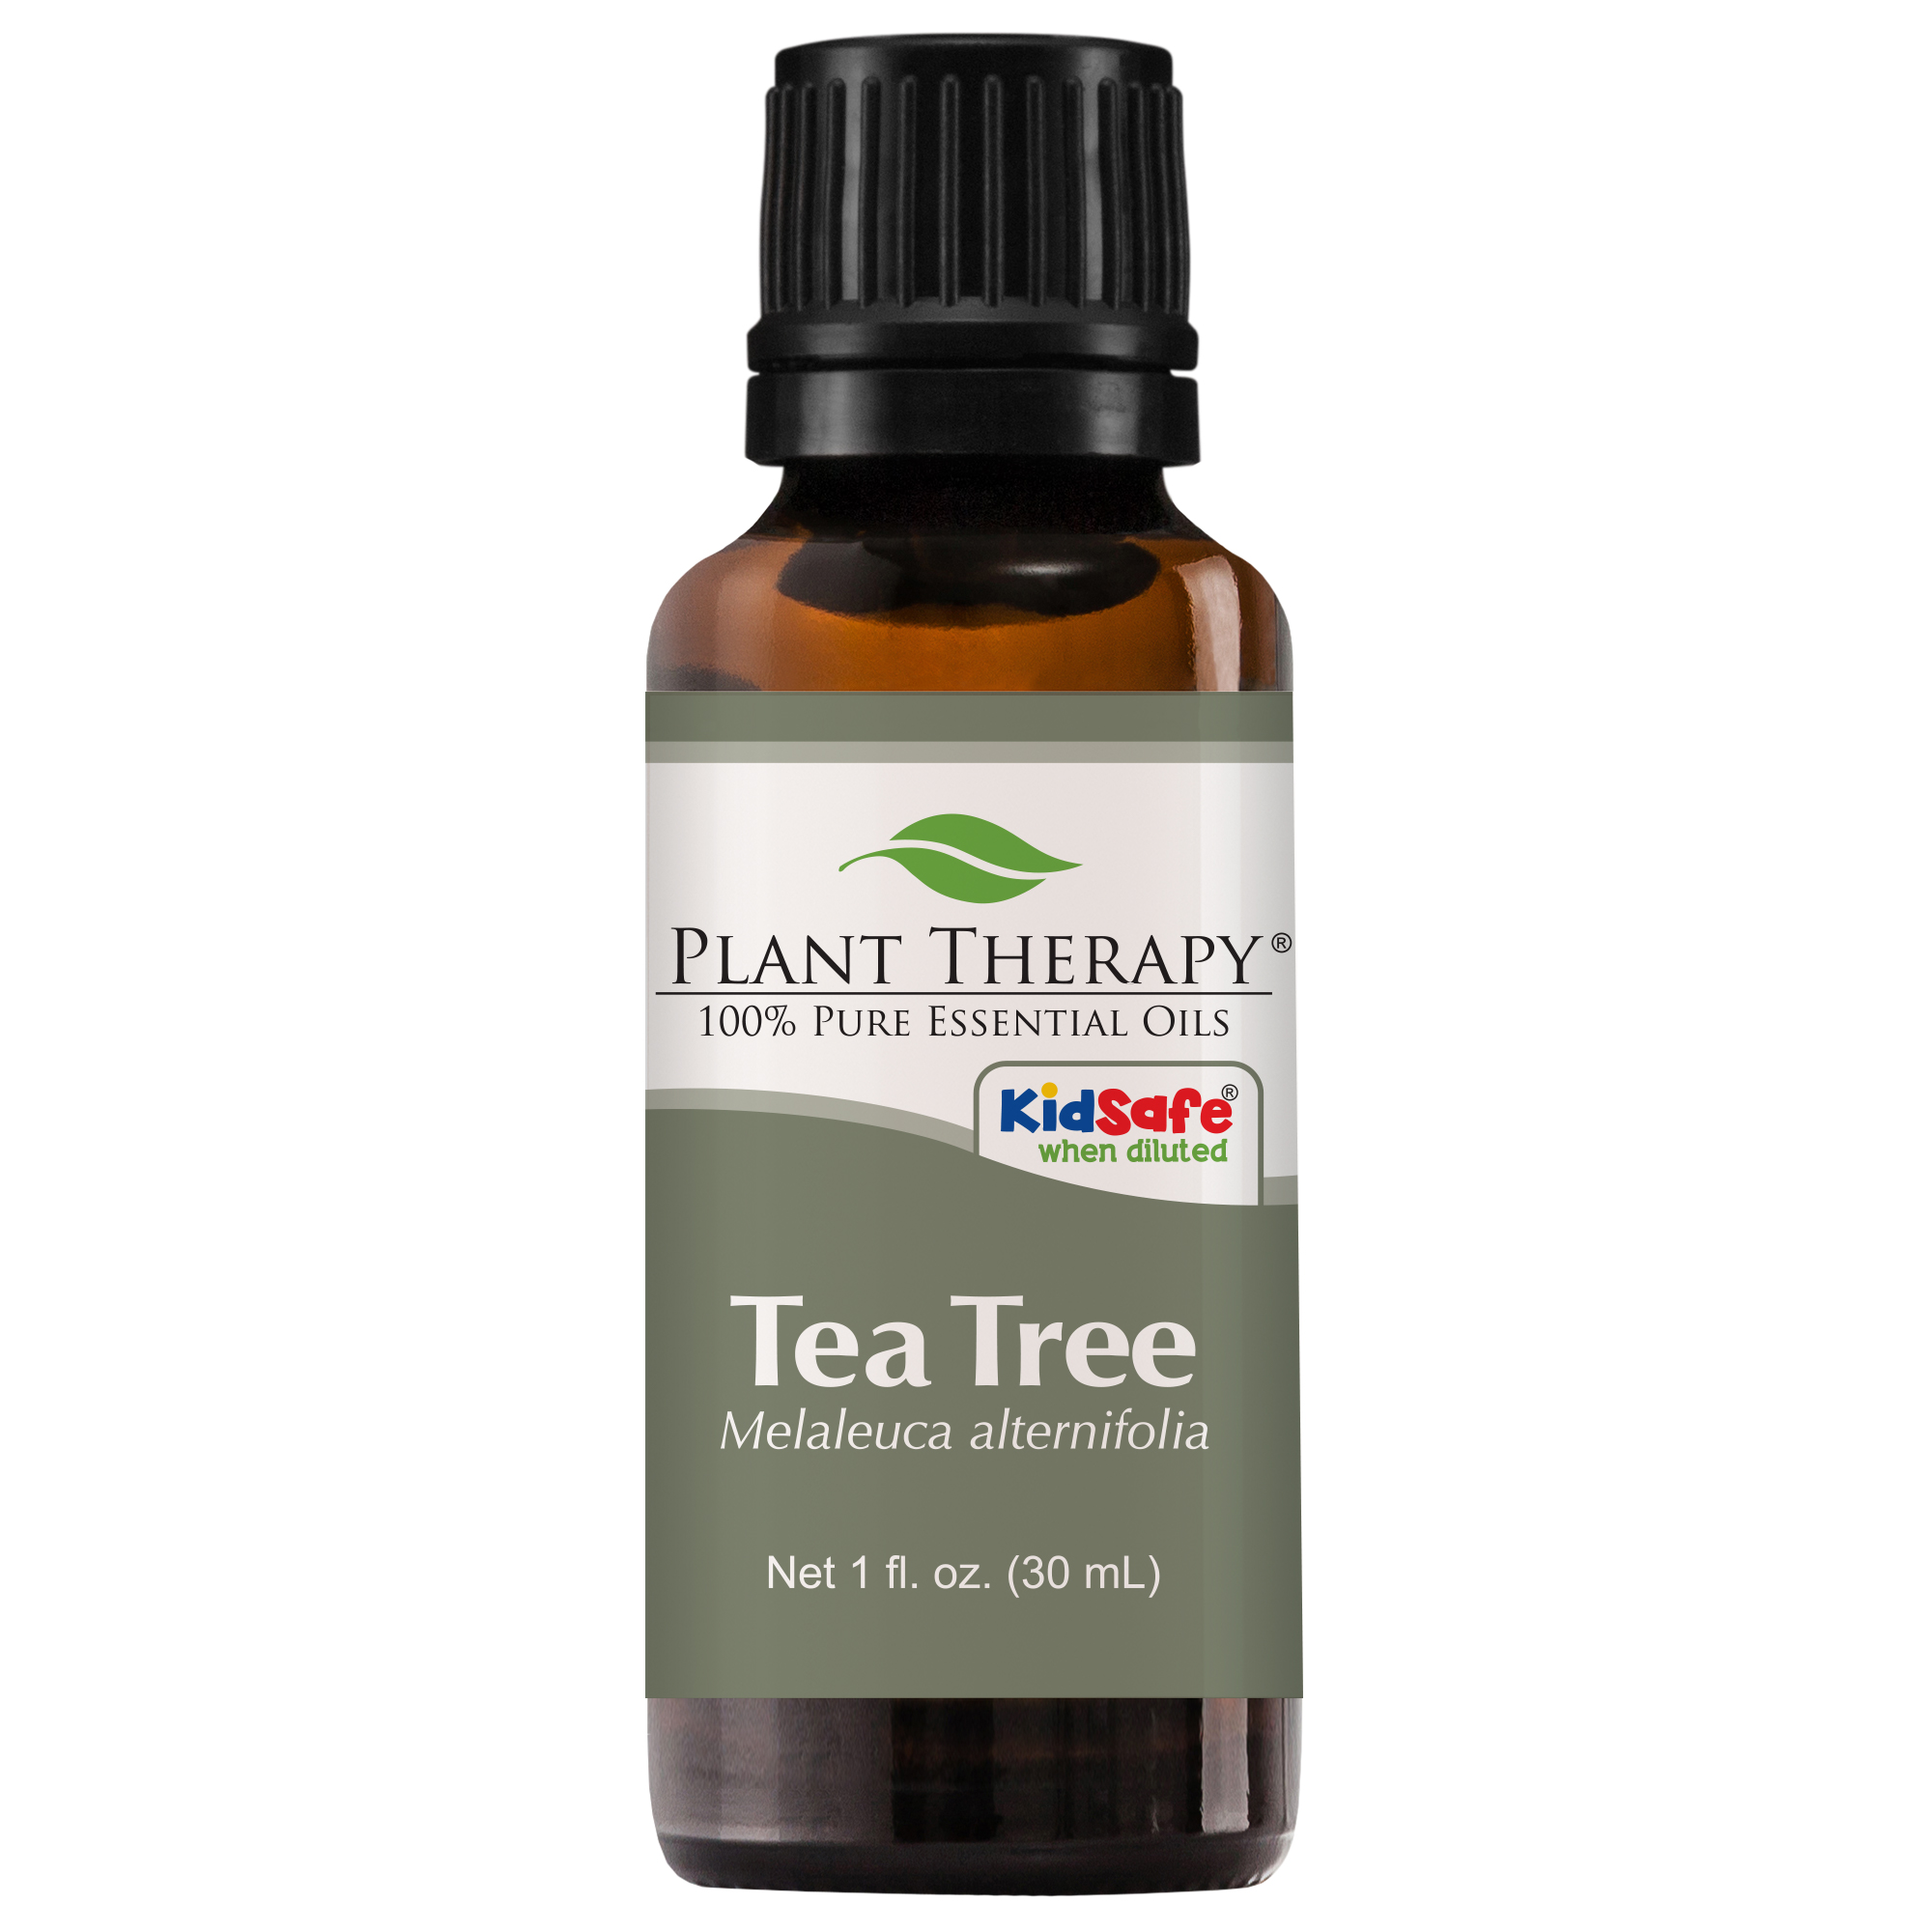 Plant Therapy Tea Tree Essential Oil | 100% Pure, Undiluted, Natural Aromatherapy, Therapeutic Grade | 30 mL (1 oz)